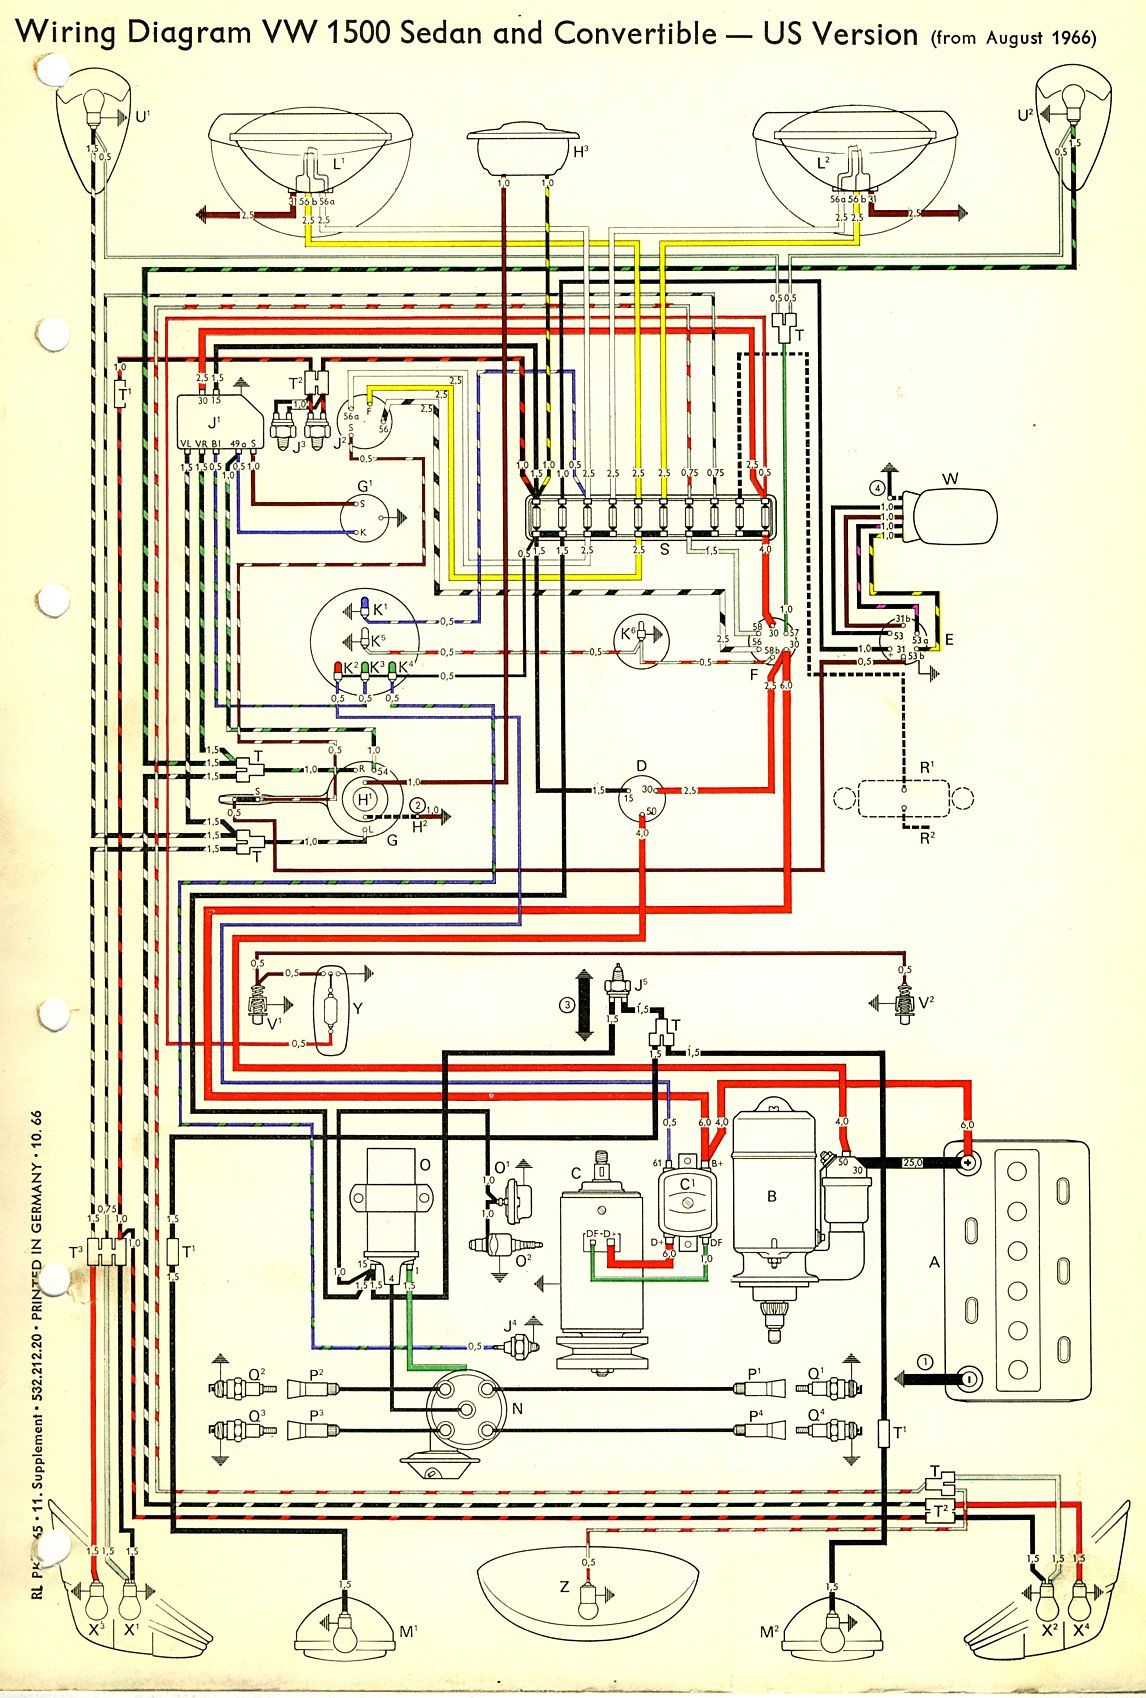 1adf990c0efb617c789fdd21338448b0 1967 beetle wiring diagram (usa) thegoldenbug com best 1967 vw 1974 vw beetle wiring diagram at virtualis.co